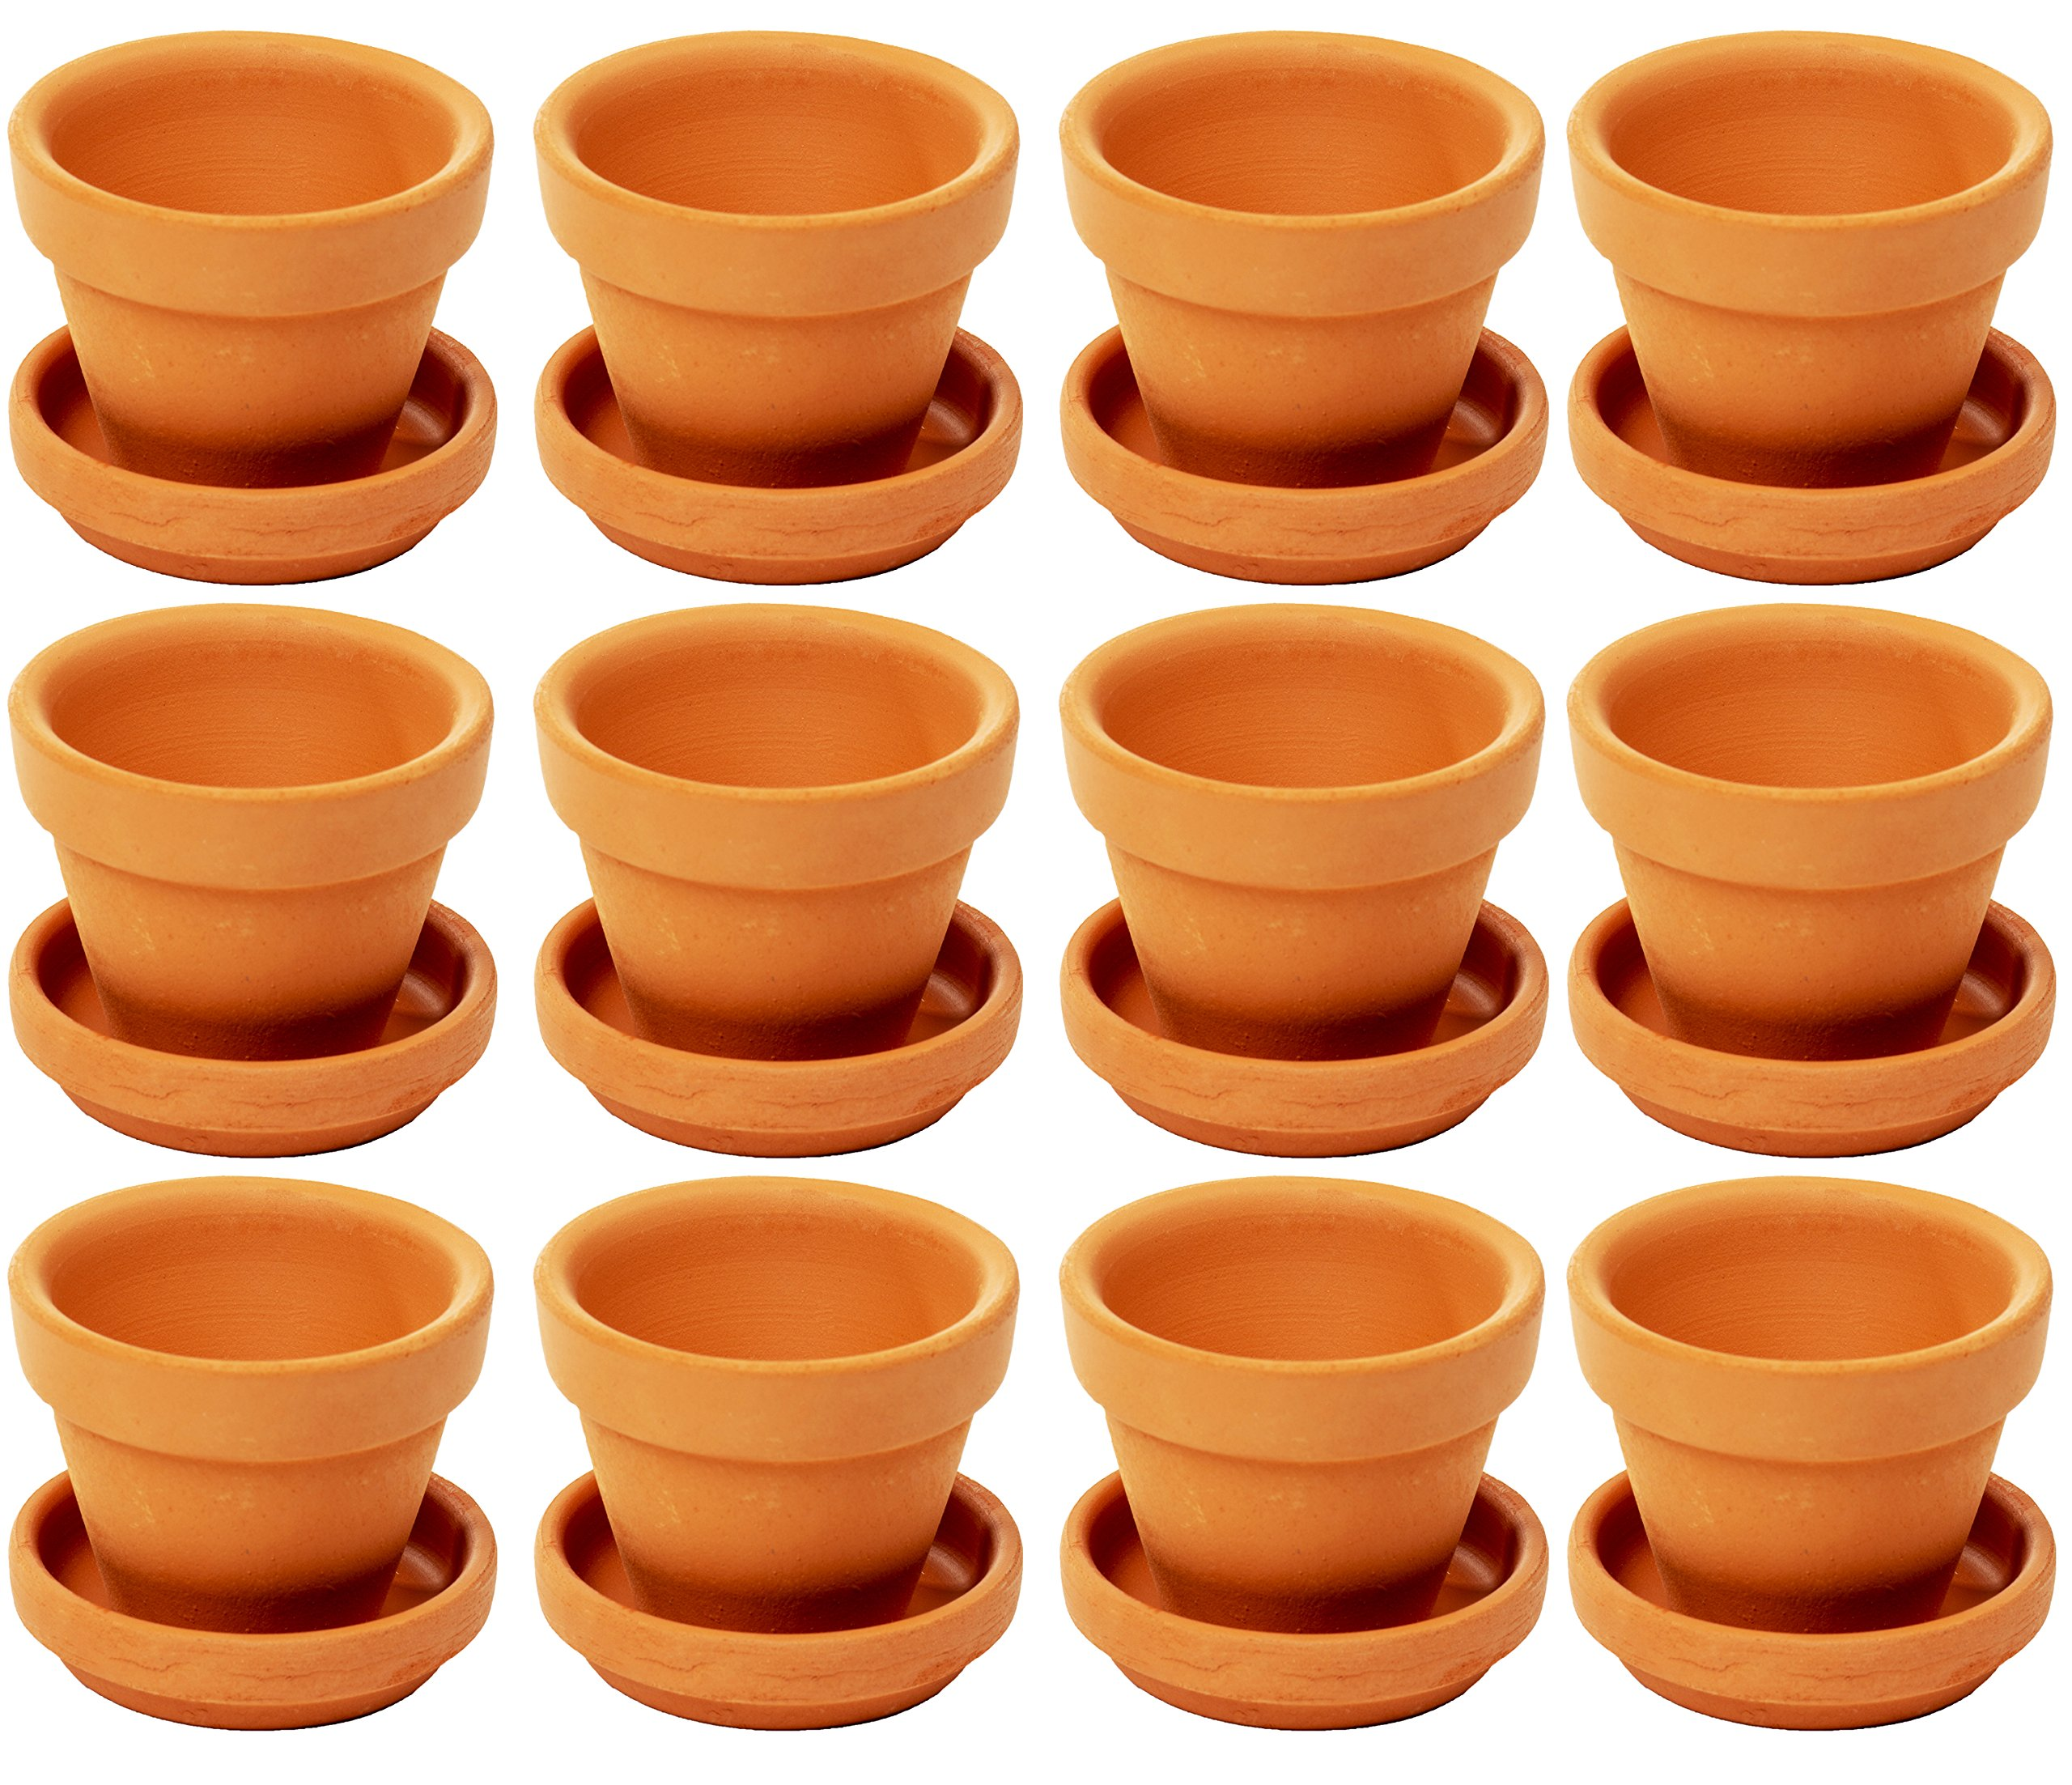 Small Terra Cotta Pots with Saucer- 12-Pack Clay Flower Pots with Saucers, Mini Flower Pot Planters for Indoor, Outdoor Plant, Succulent Display, Brown - 2.7 x 2.5 inches